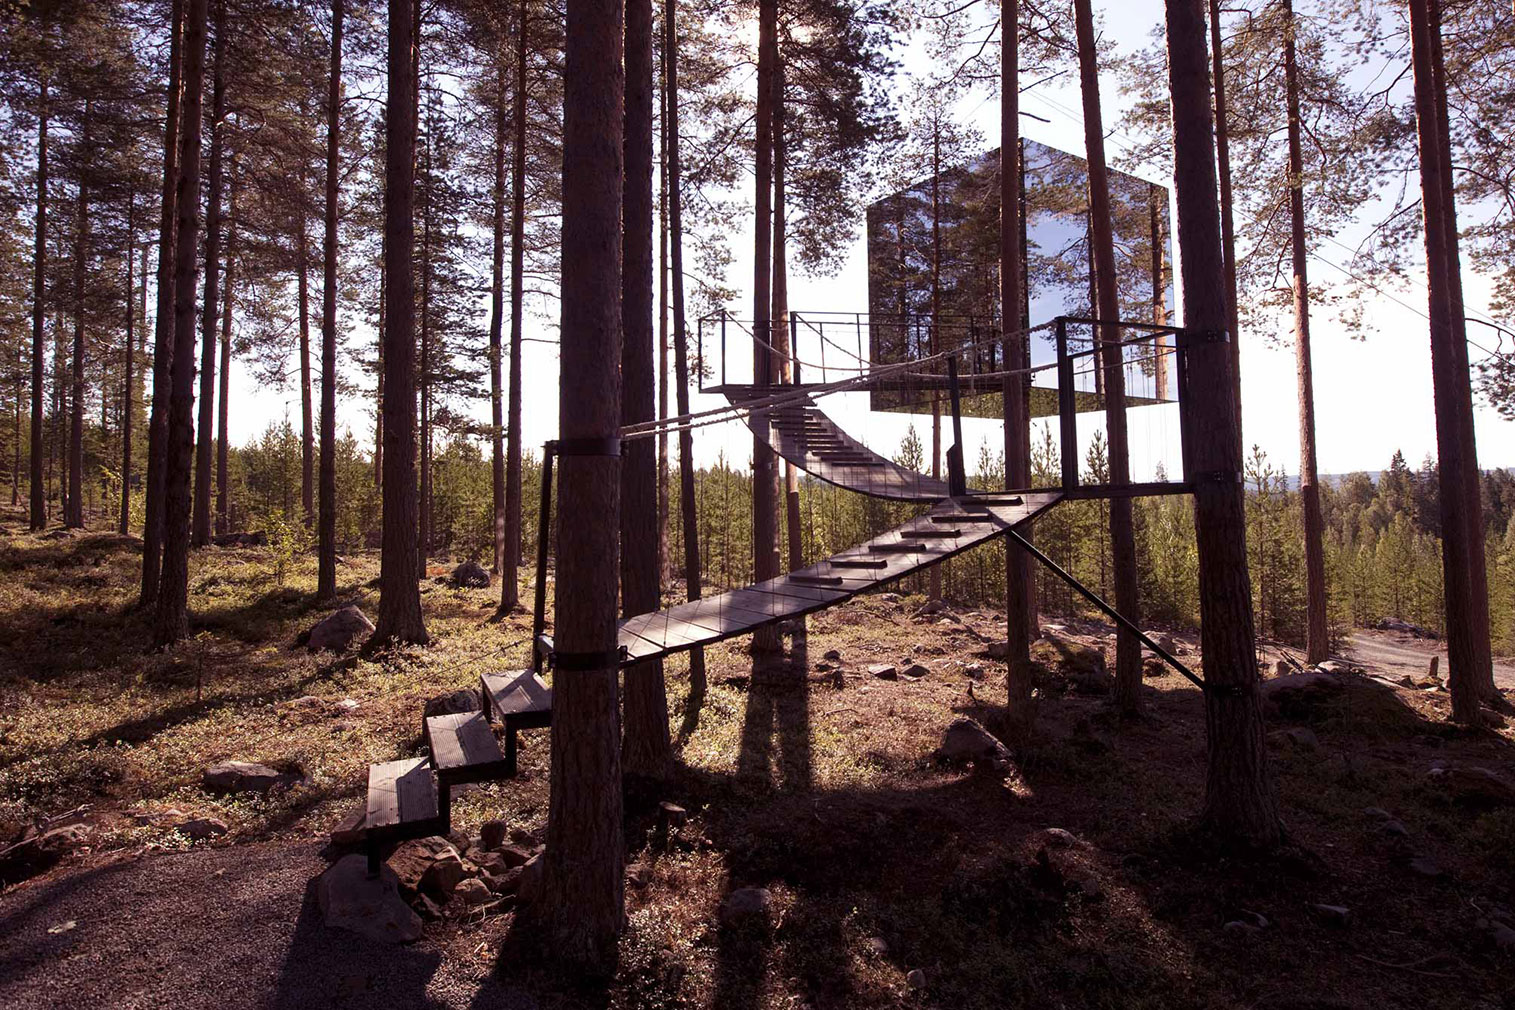 TreeHotel in Sweden